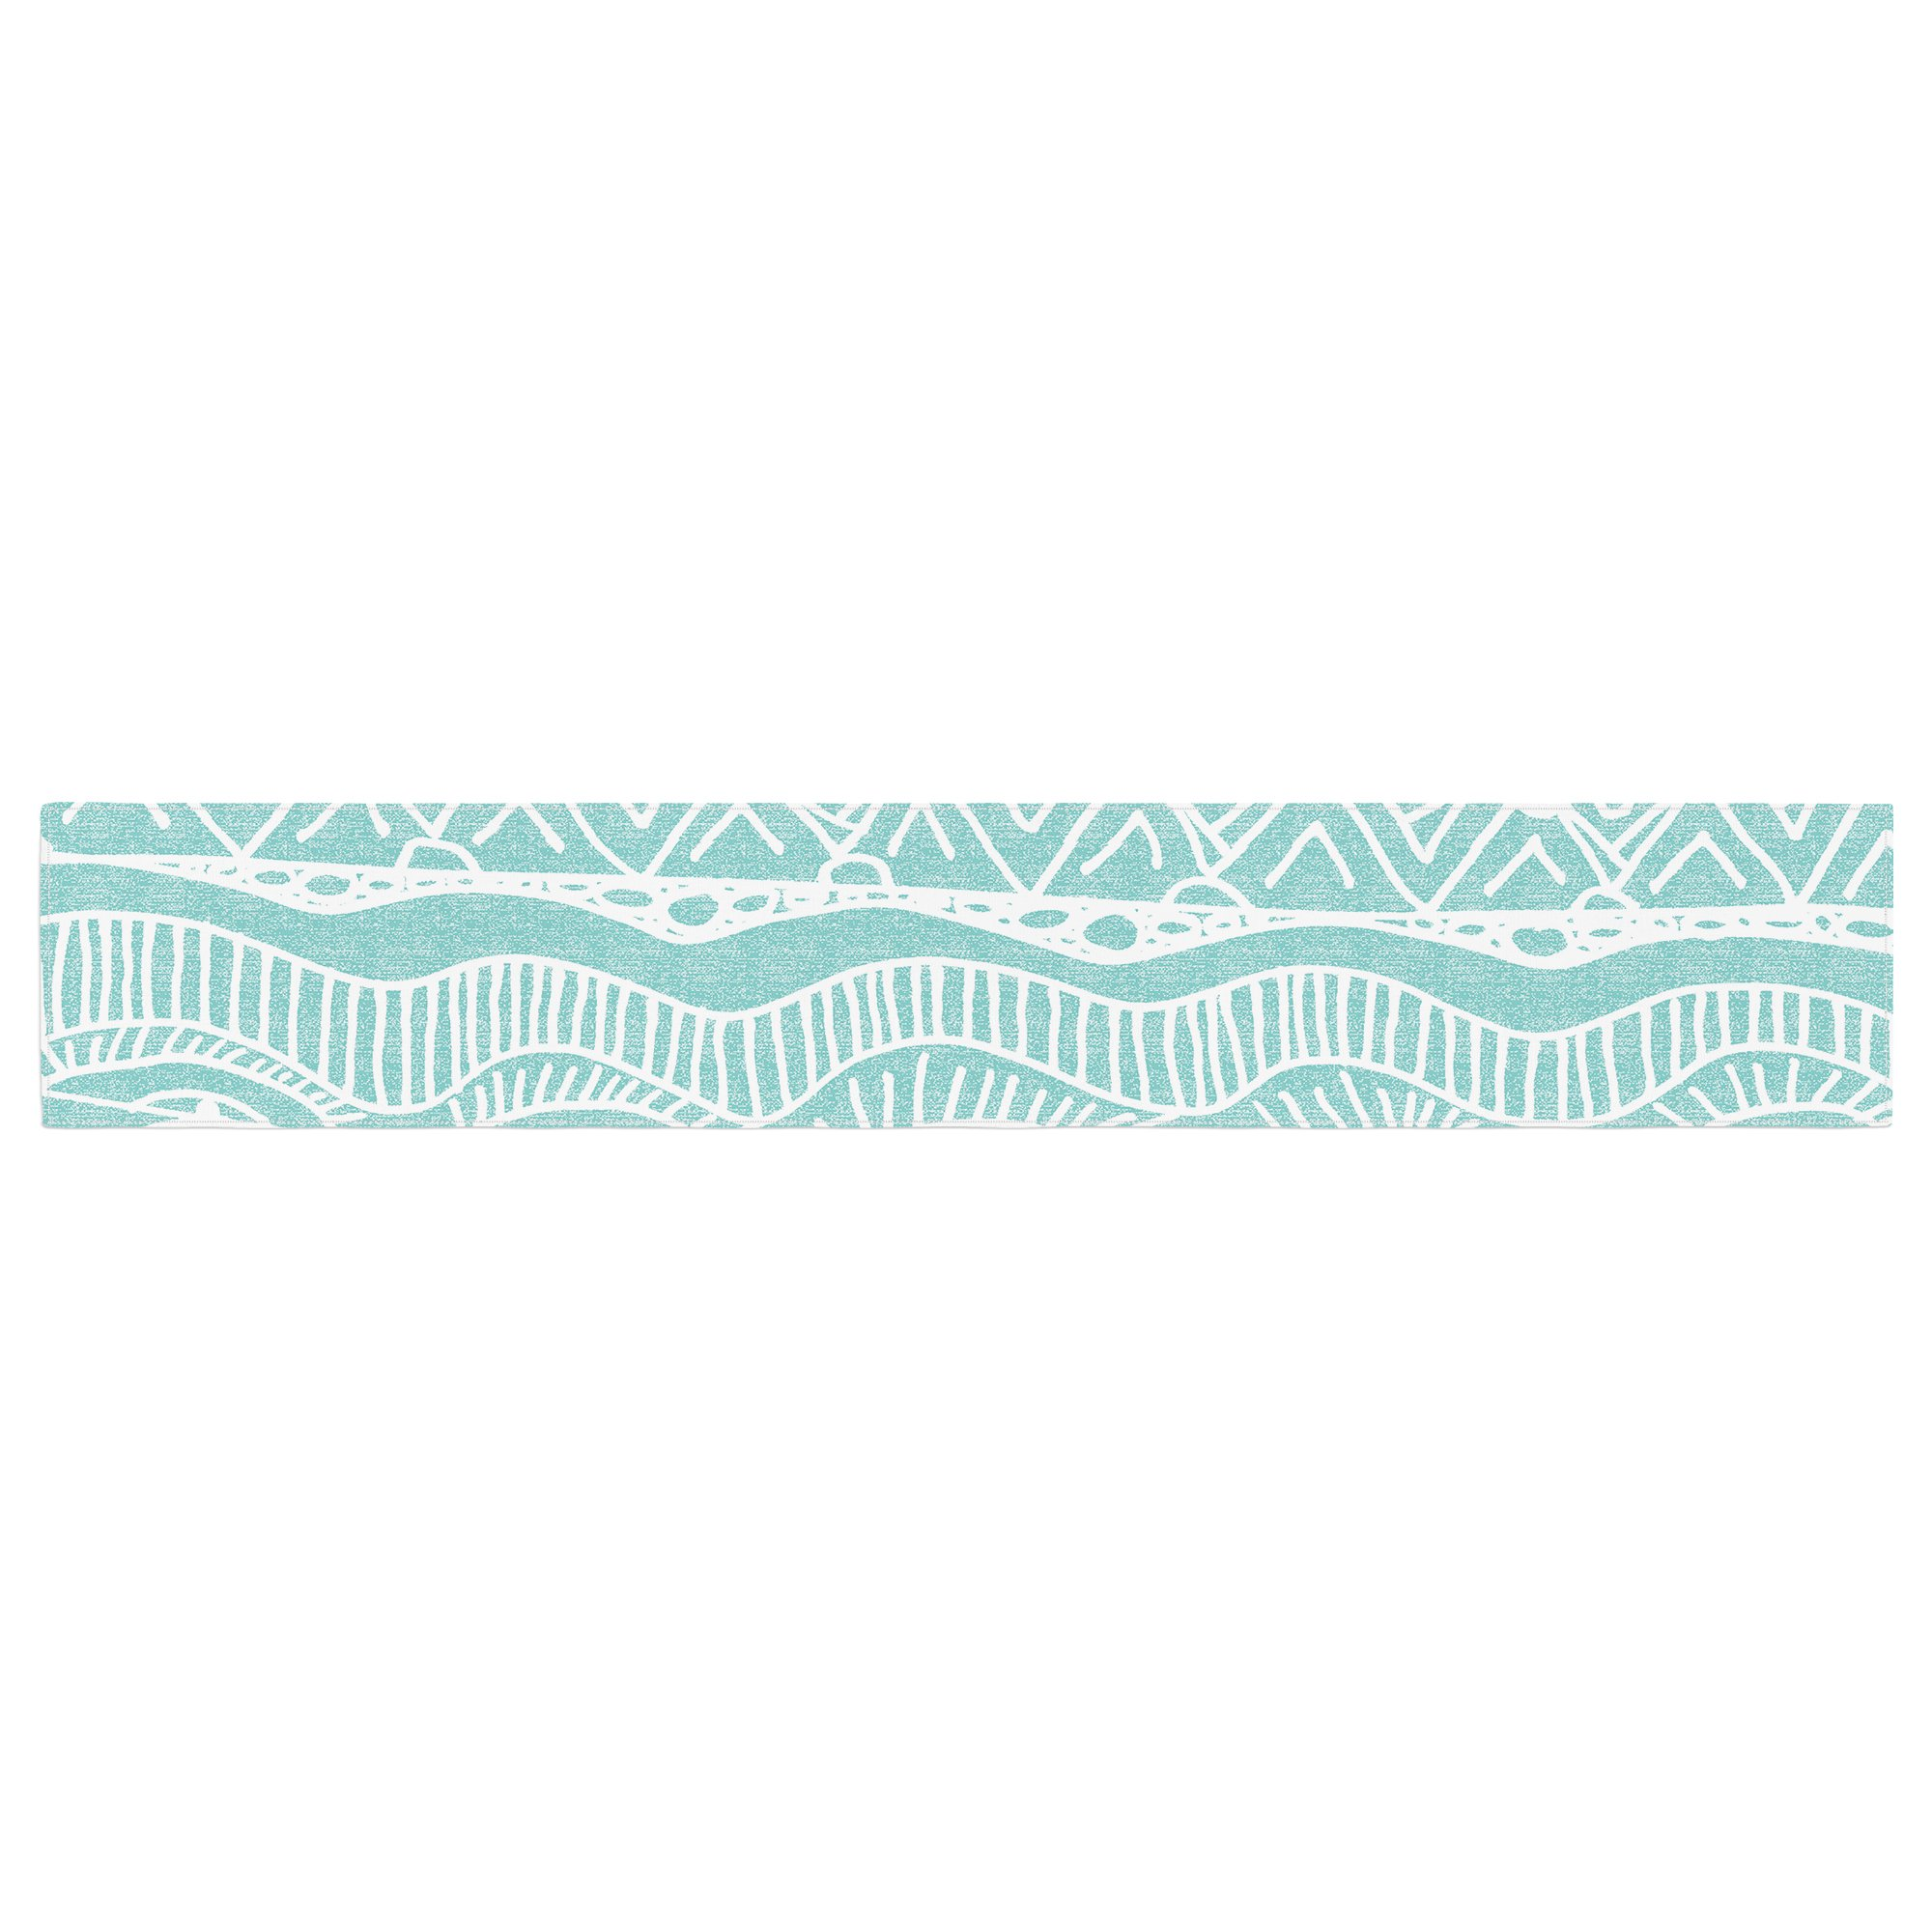 KESS InHouse Catherine Holcombe ''Beach Blanket Bingo'' Table Runner, 16'' x 90'' by Kess InHouse